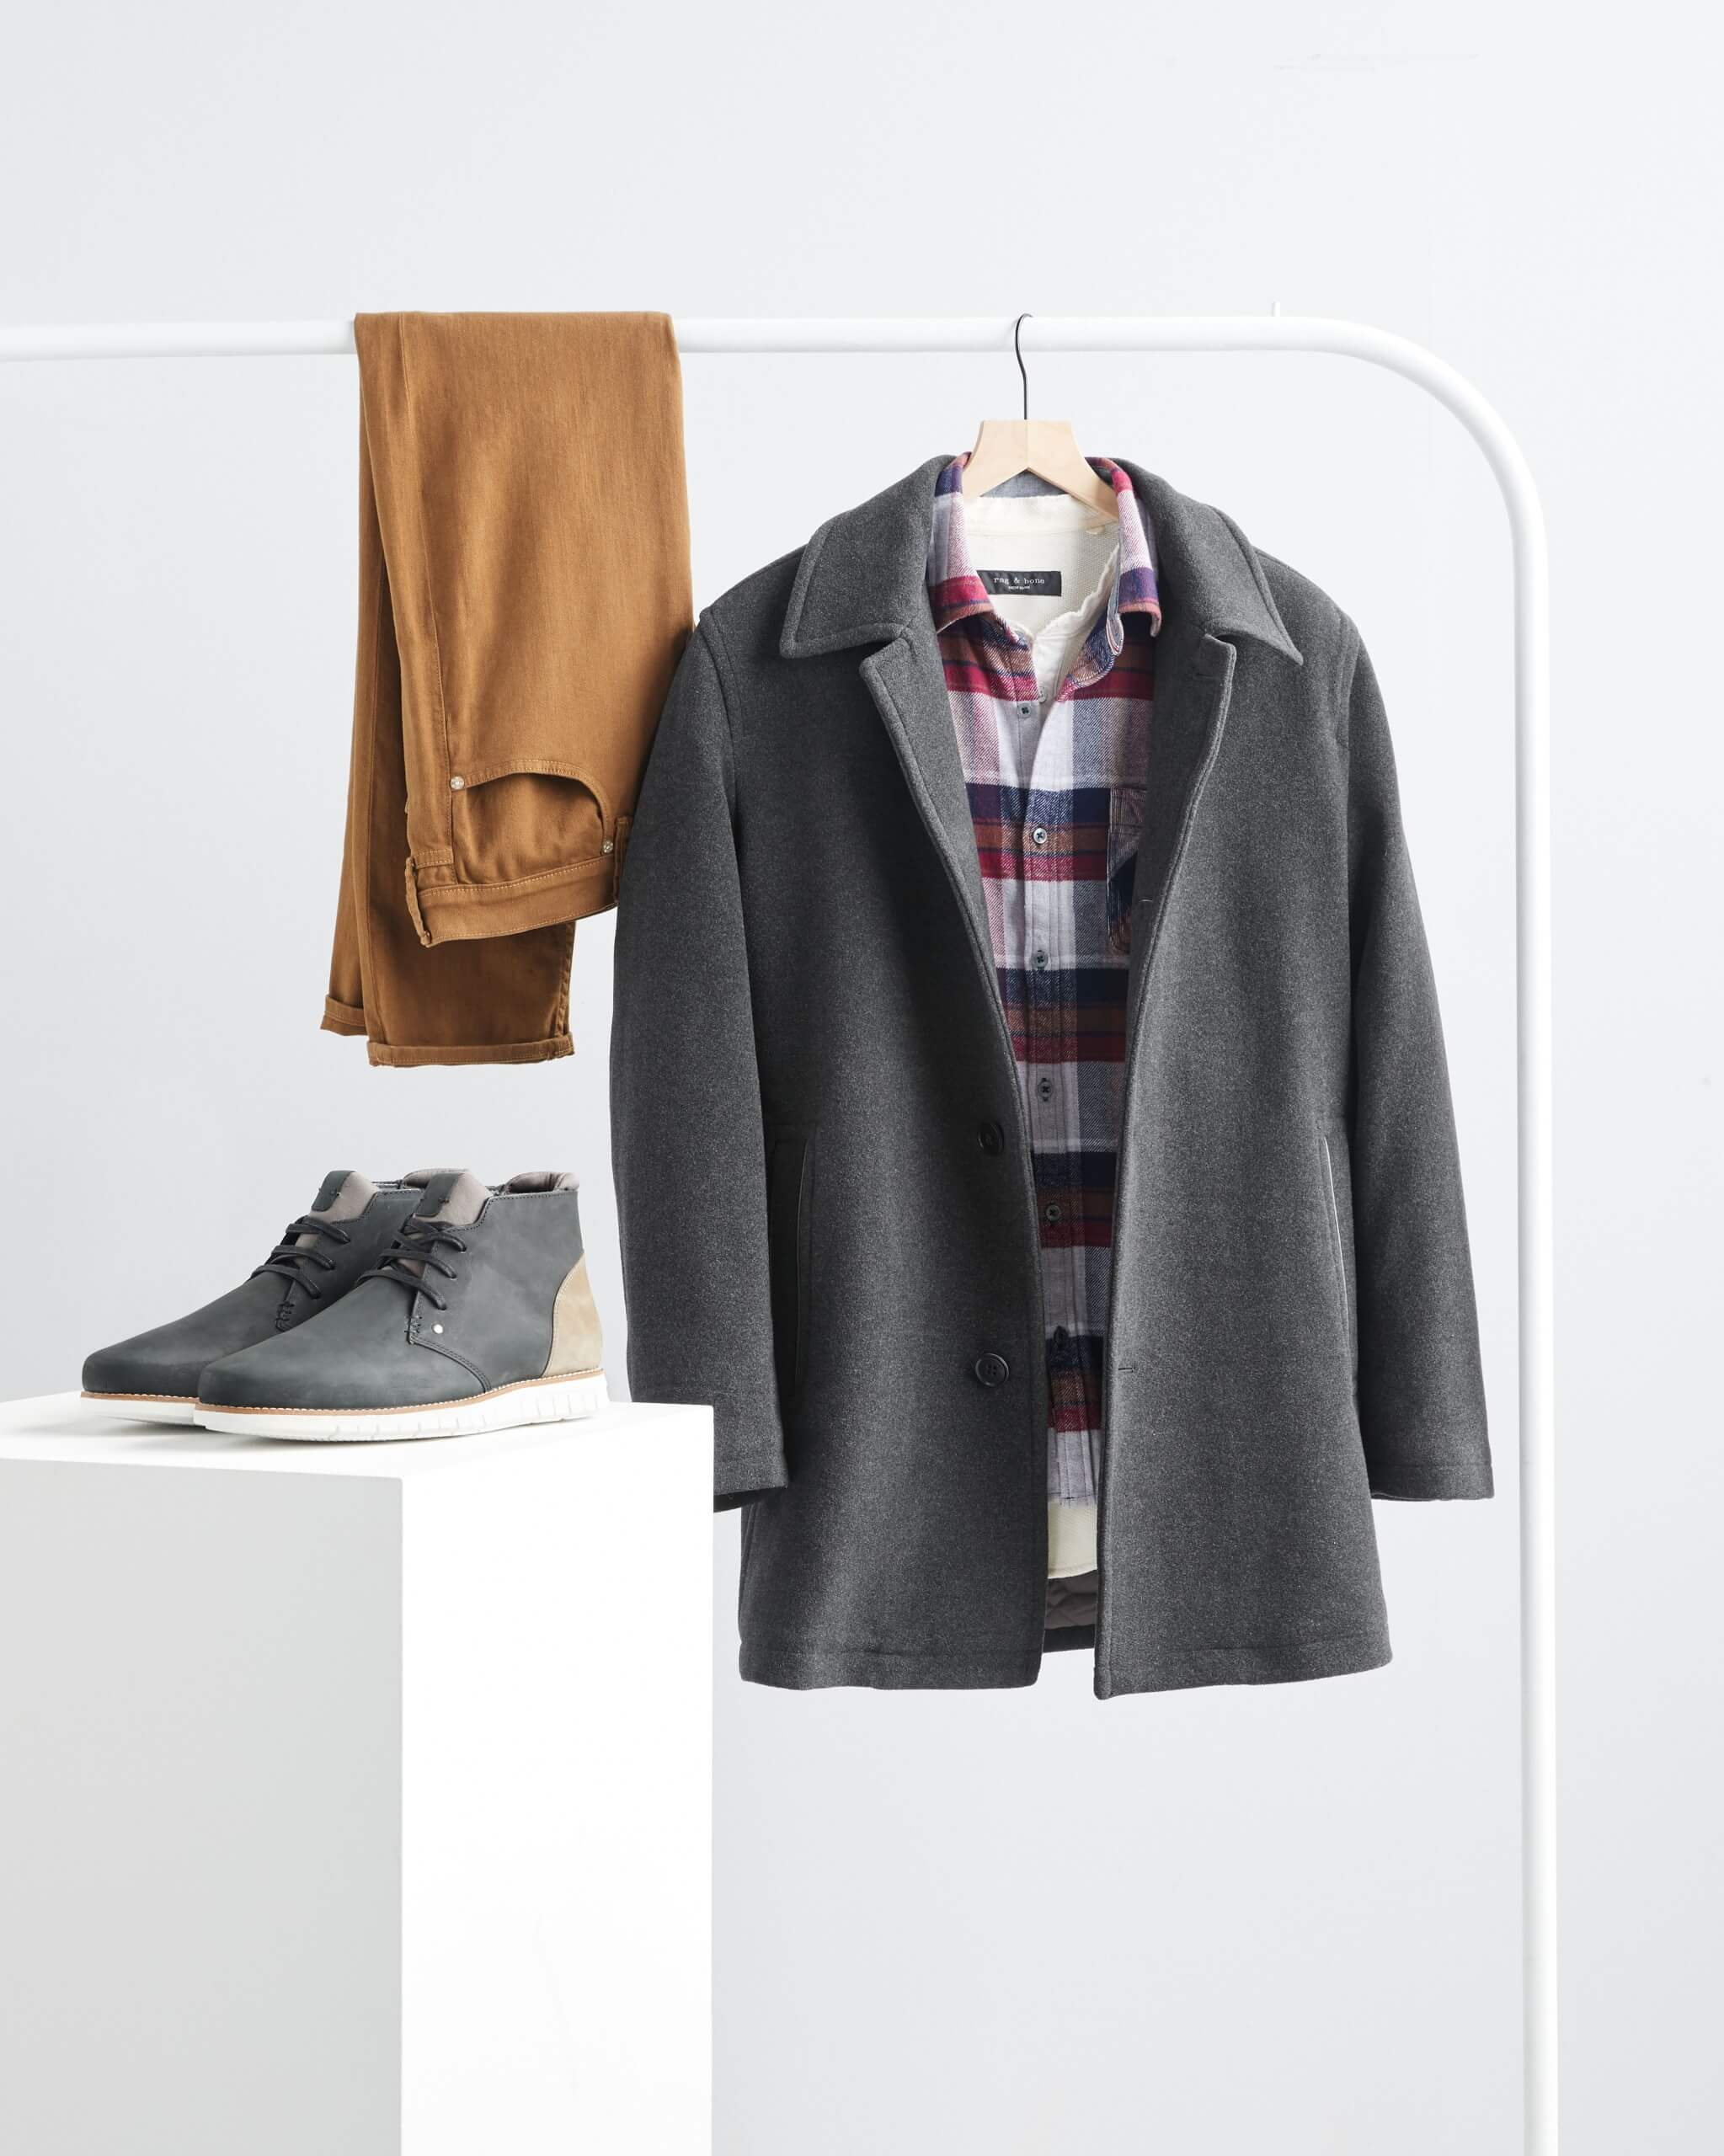 Stitch Fix men's grey wool peacoat, red and blue plaid flannel shirt and brown slim-fit jeans hanging on a rack with grey chukkas on a white podium.